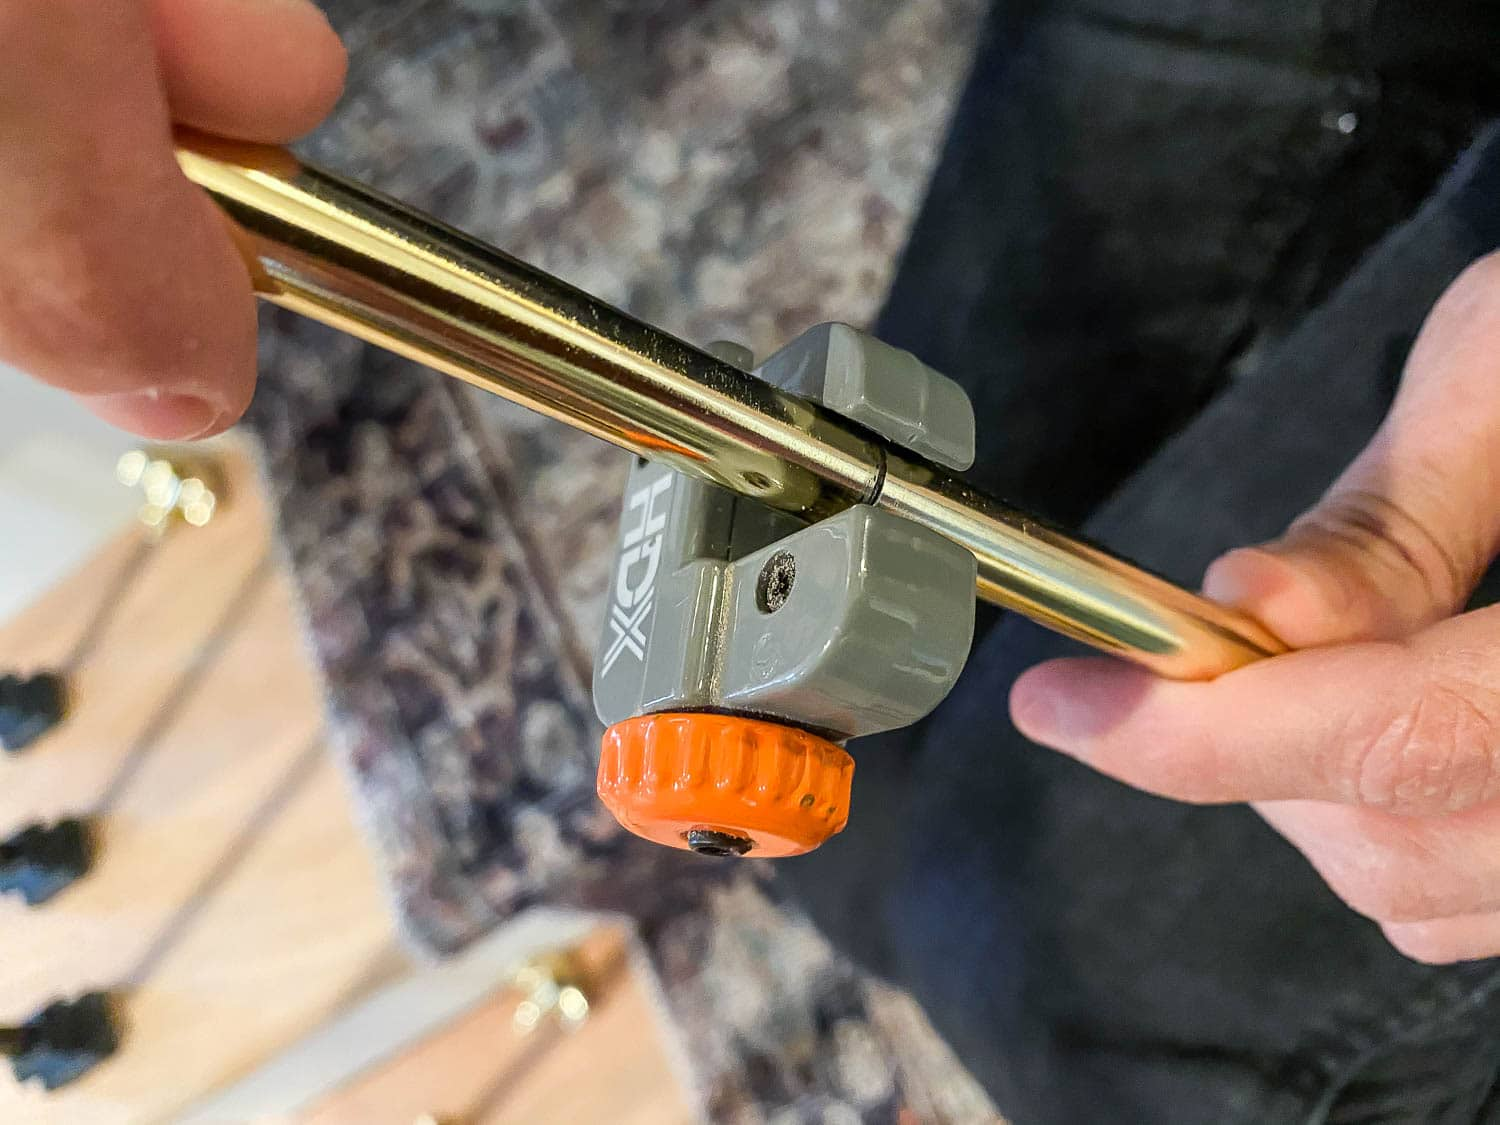 Cutting brass stair rods to length with a pipe cutter